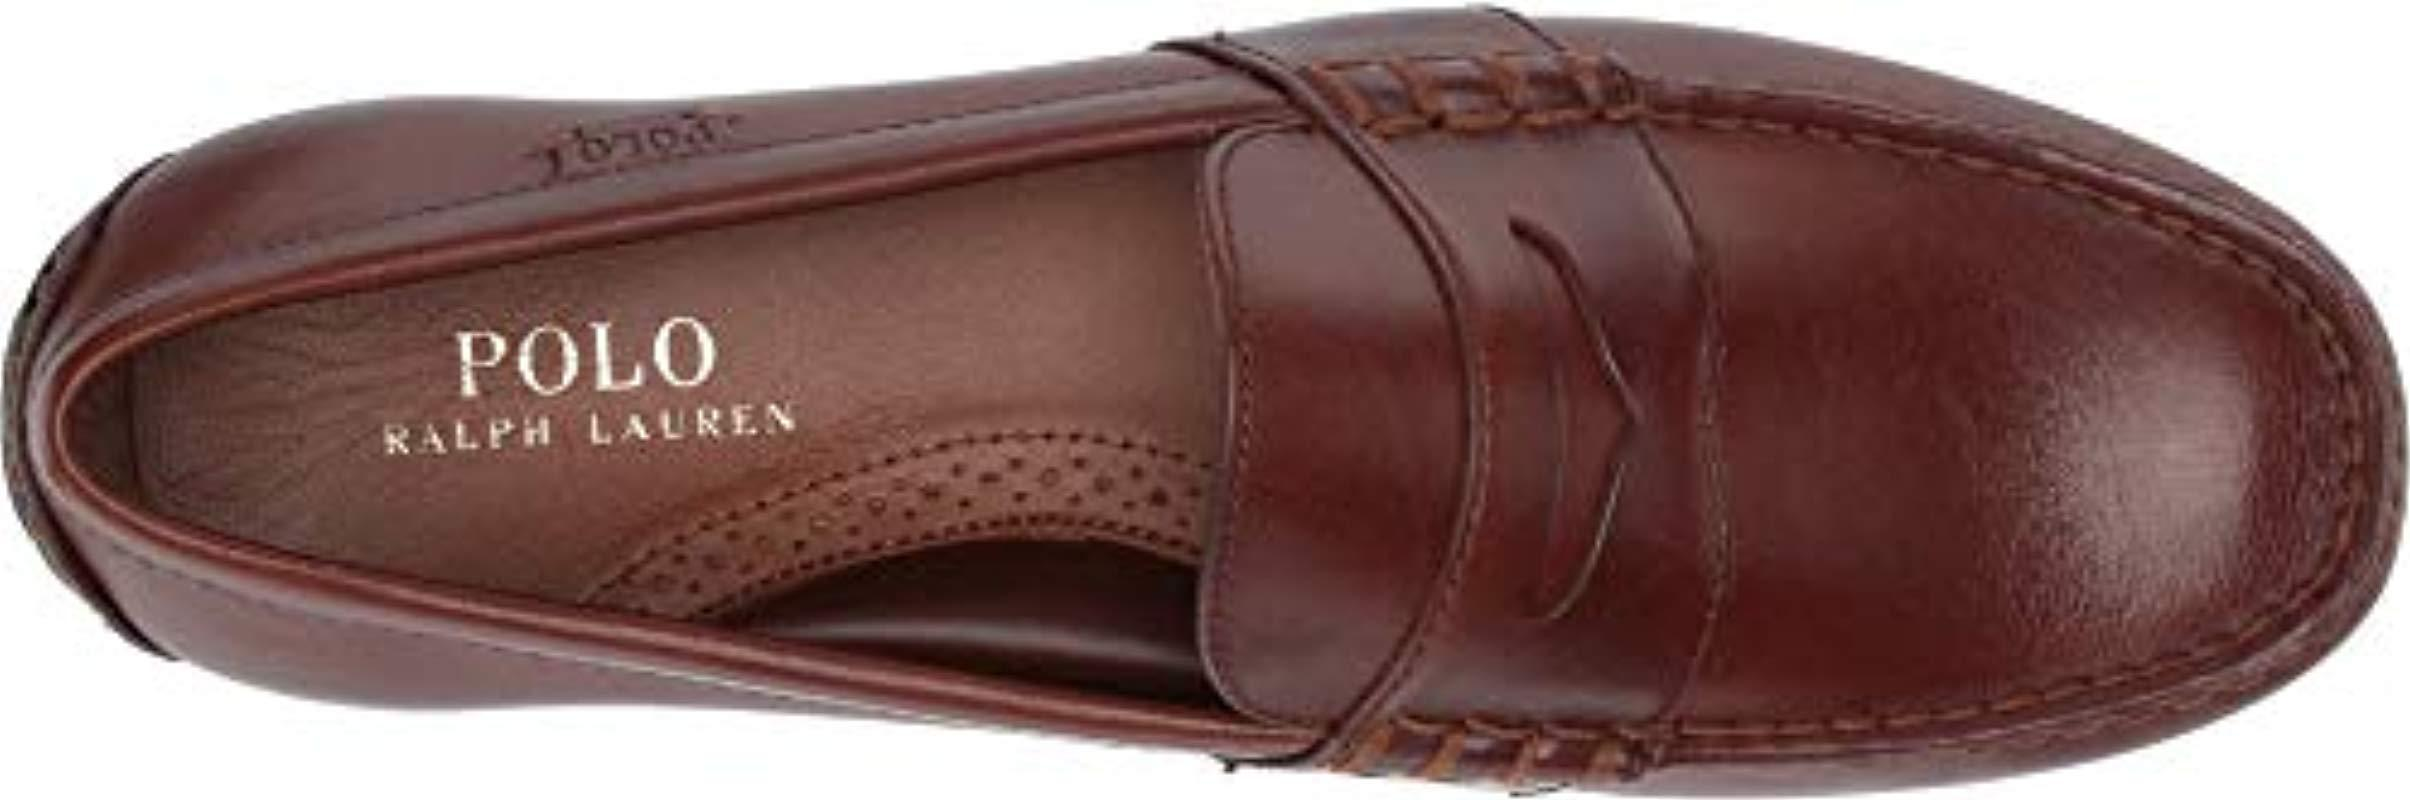 18443169d00 Lyst - Polo Ralph Lauren Reynold Driving Style Loafer for Men